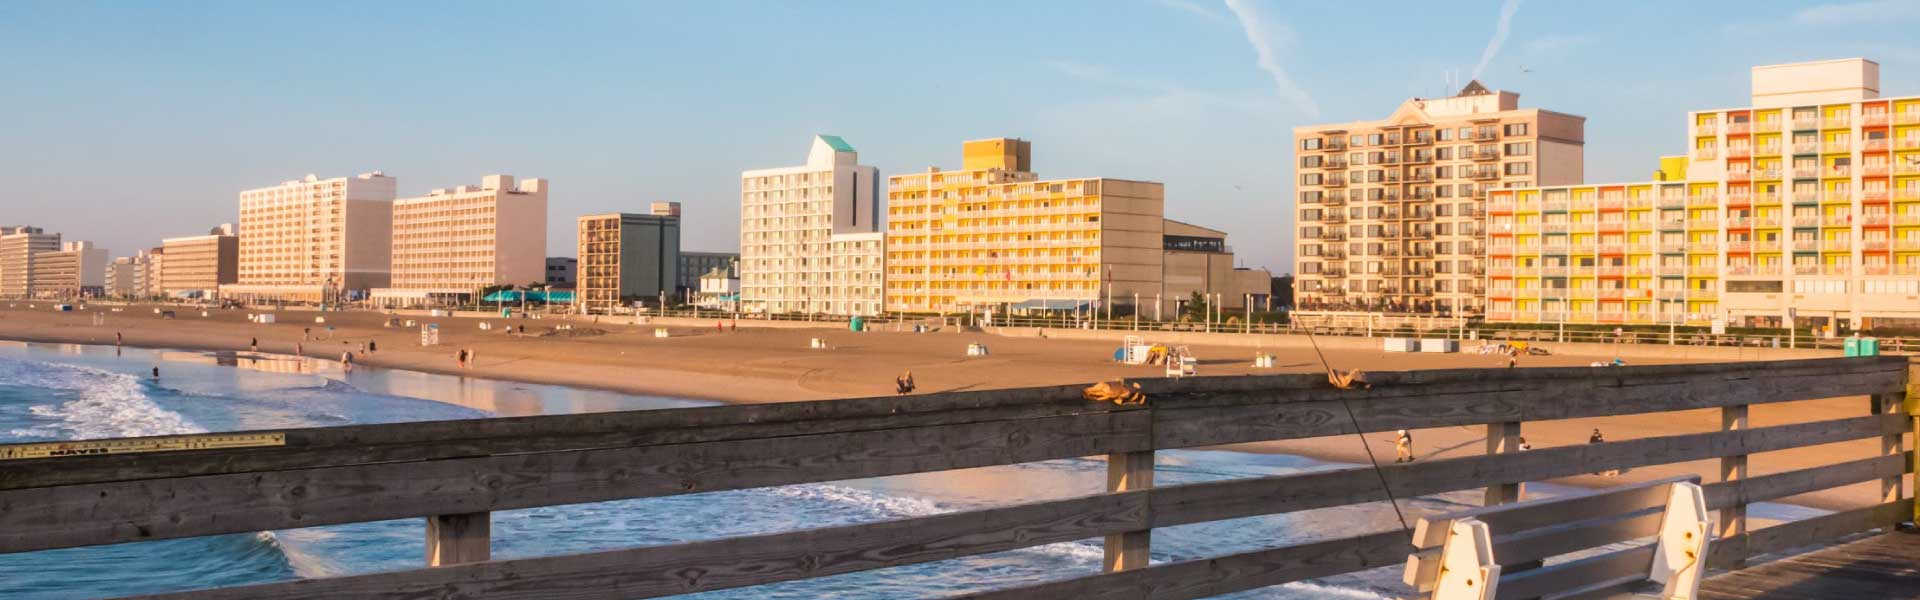 Virginia Beach development